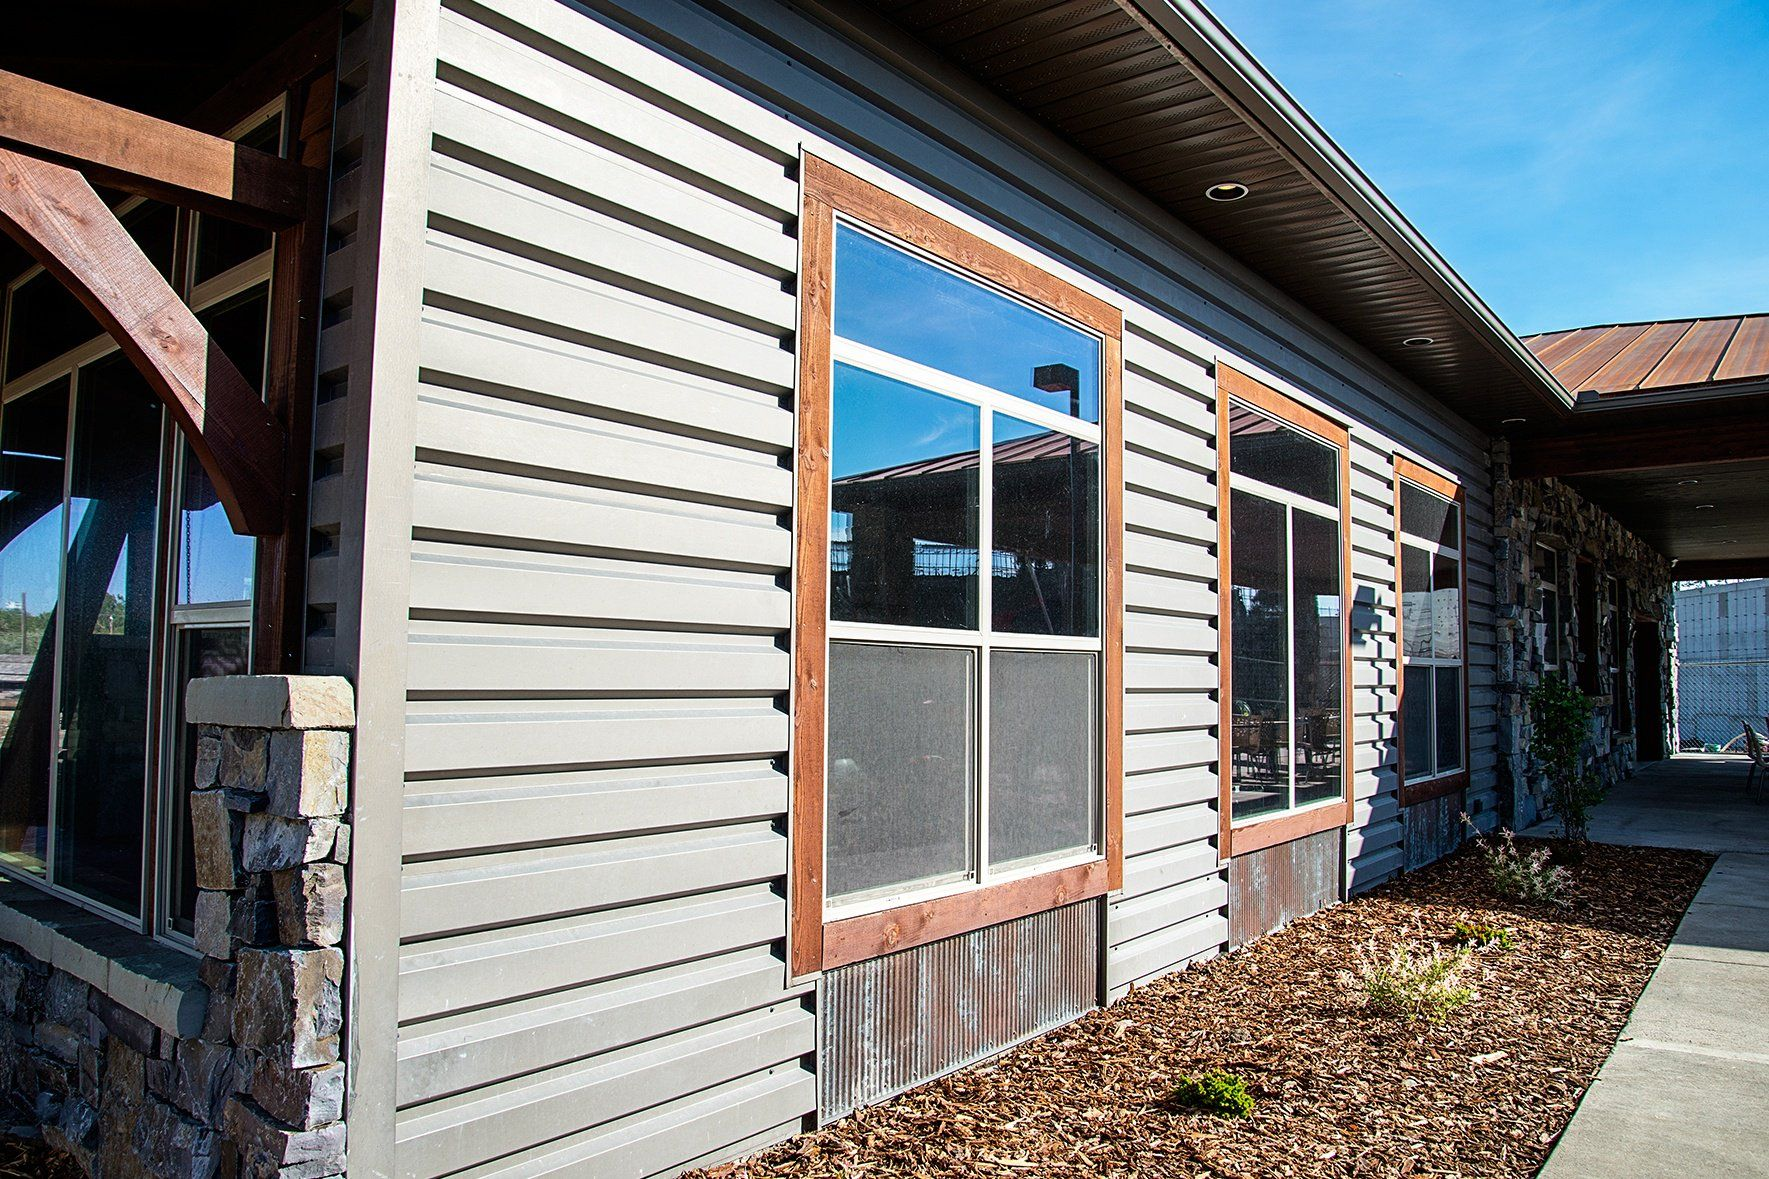 Commercial Building With 6025 Structural Siding Metal Siding Building Siding Architecture